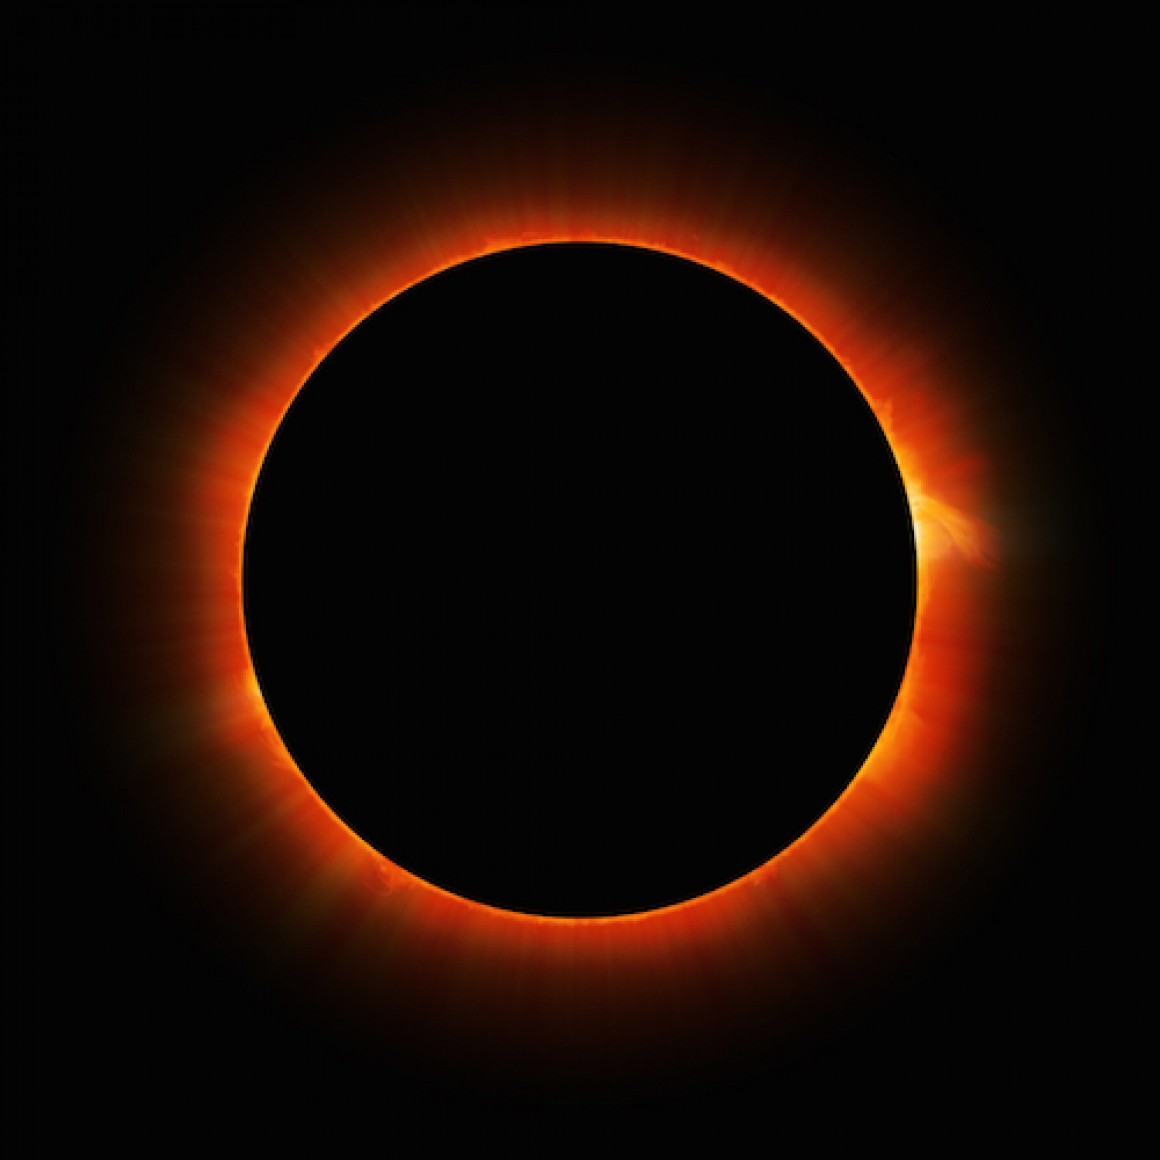 Final Countdown to Total Solar Eclipse: Expectations, Viewing Options, and the Perfect Photo